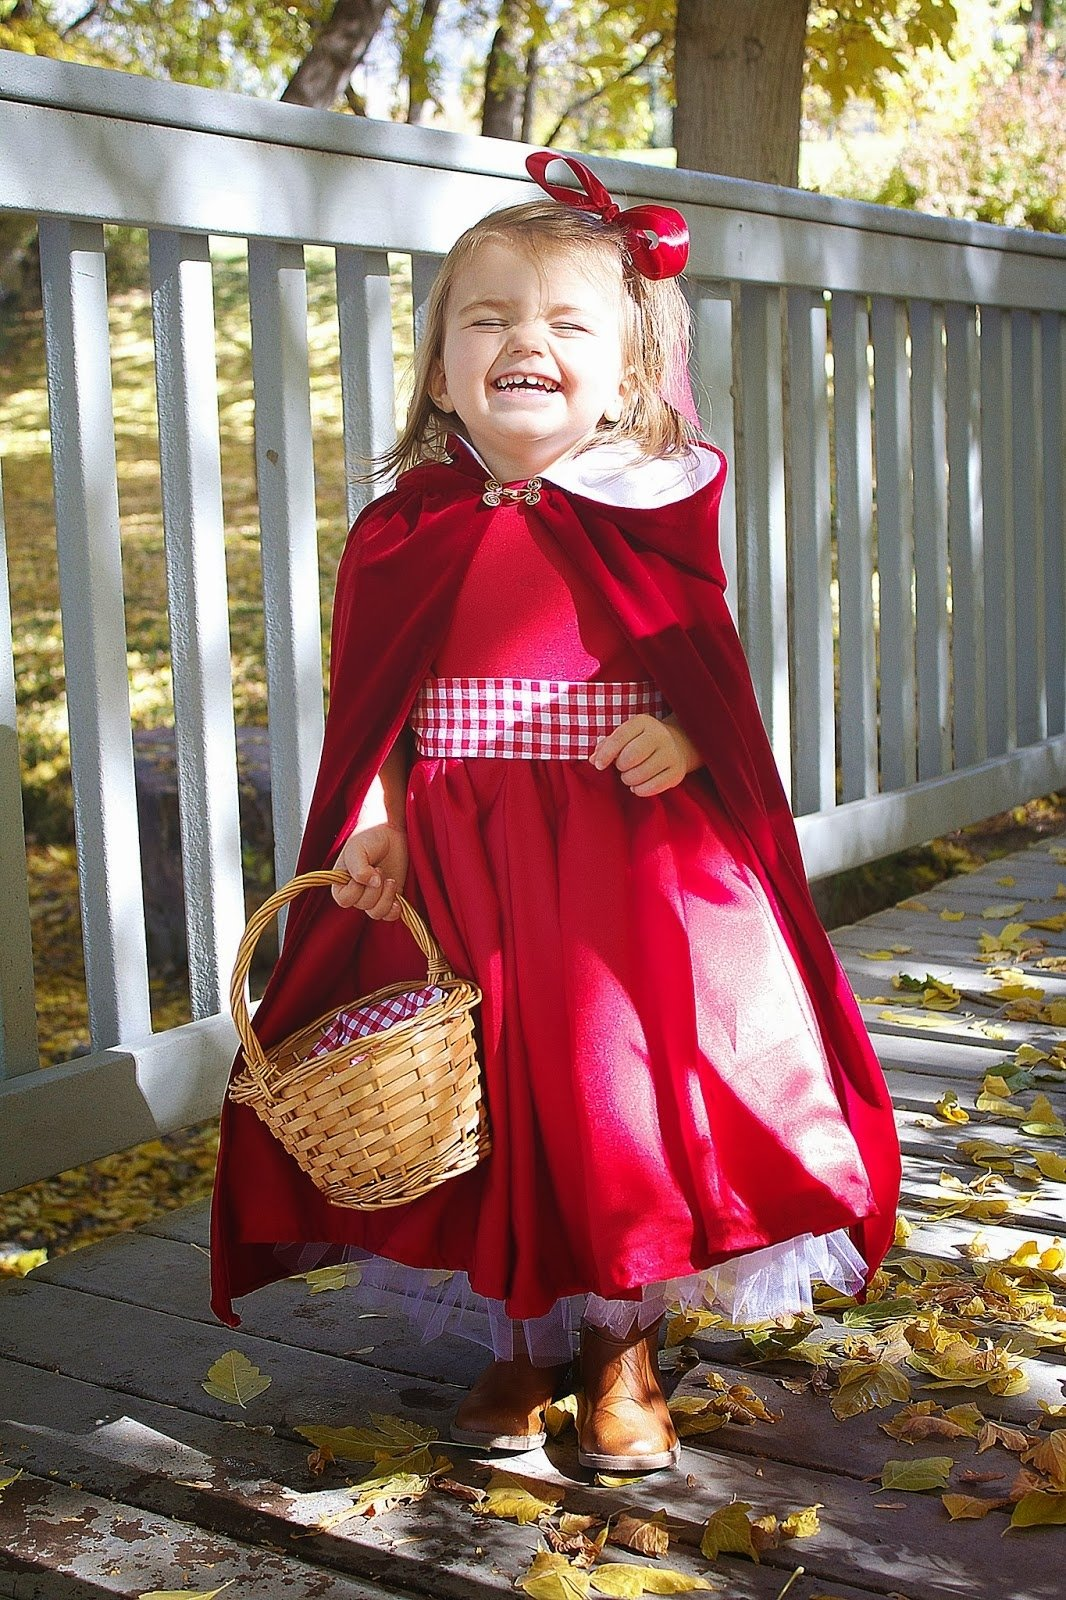 10 Trendy Red Riding Hood Costume Ideas do it yourself divas diy little red riding hood costume cloak 2t 4t 2020